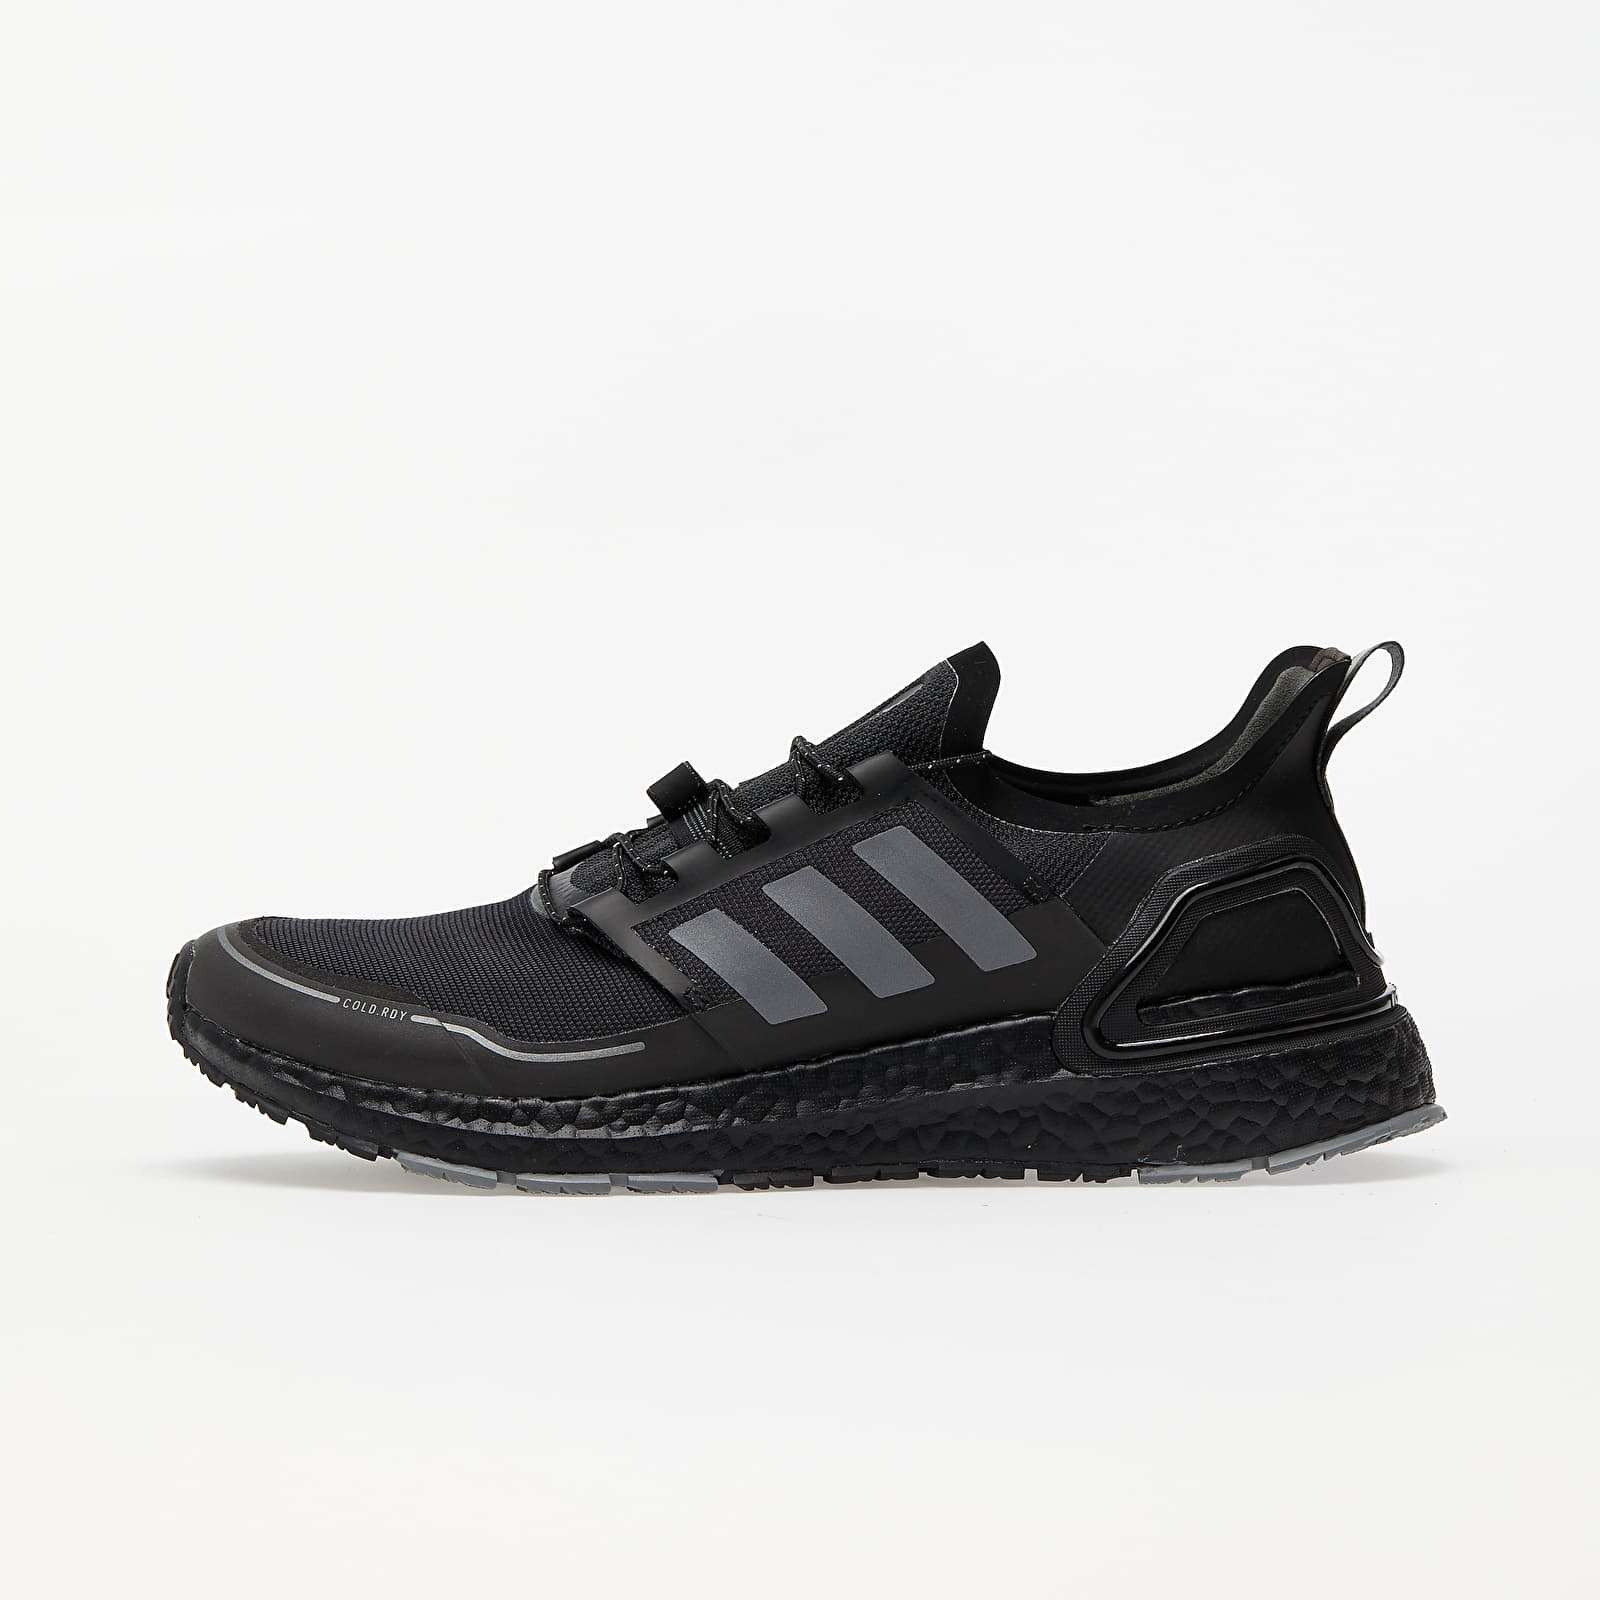 Herenschoenen adidas UltraBOOST COLD.RDY Core Black/ Iron Metalic/ Core Black